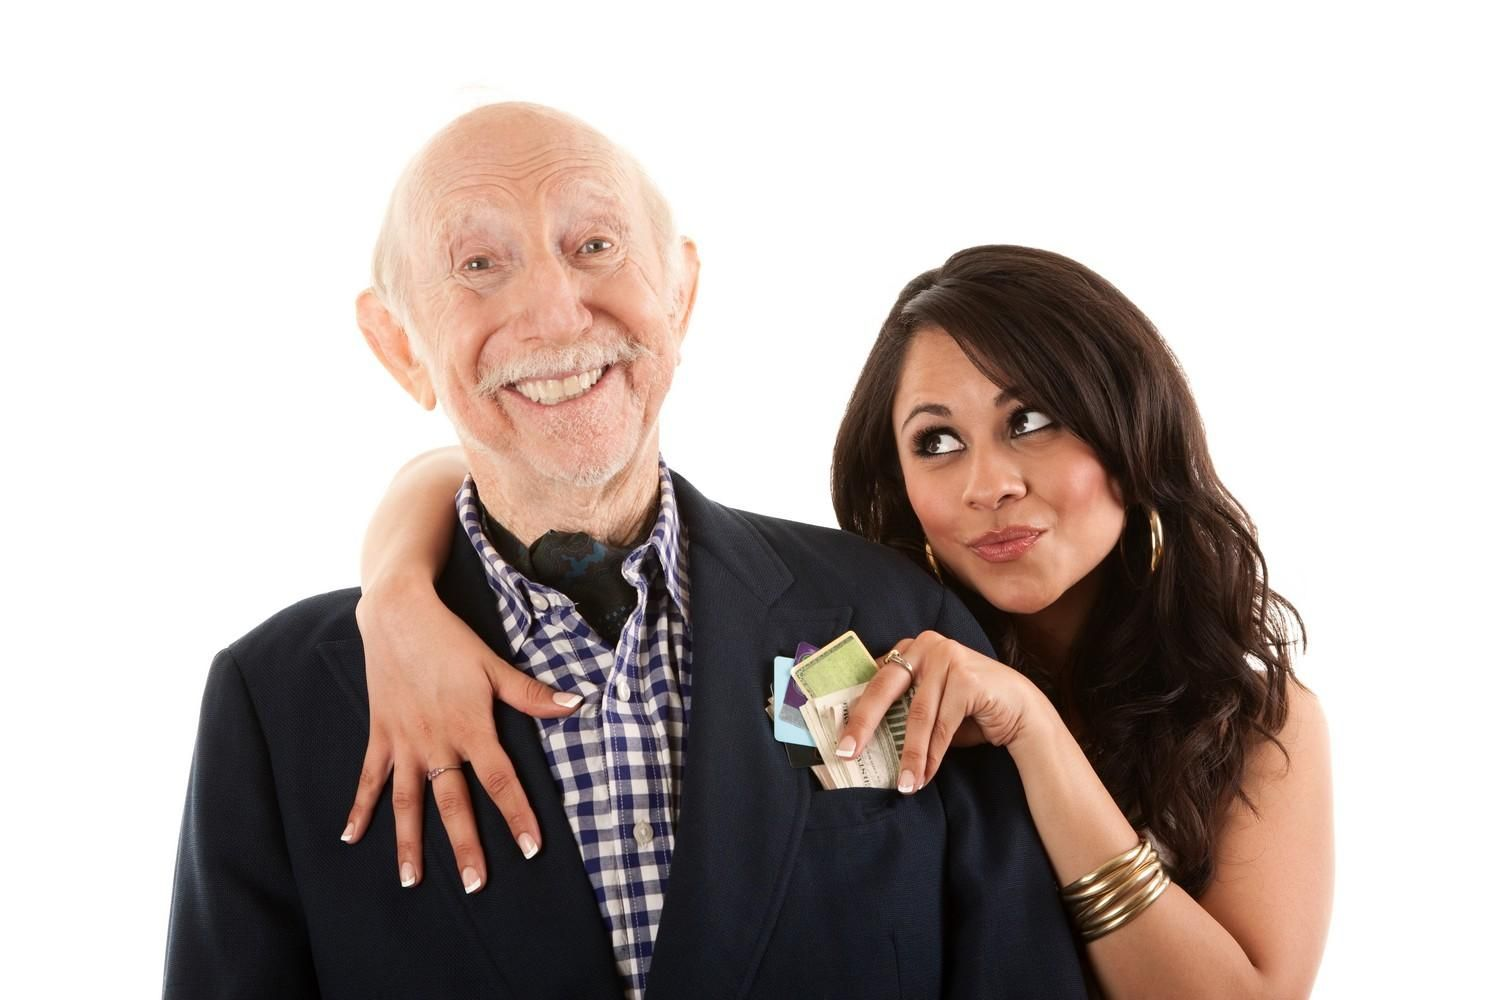 bigstock-rich-elderly-man-with-gold-dig-10034459